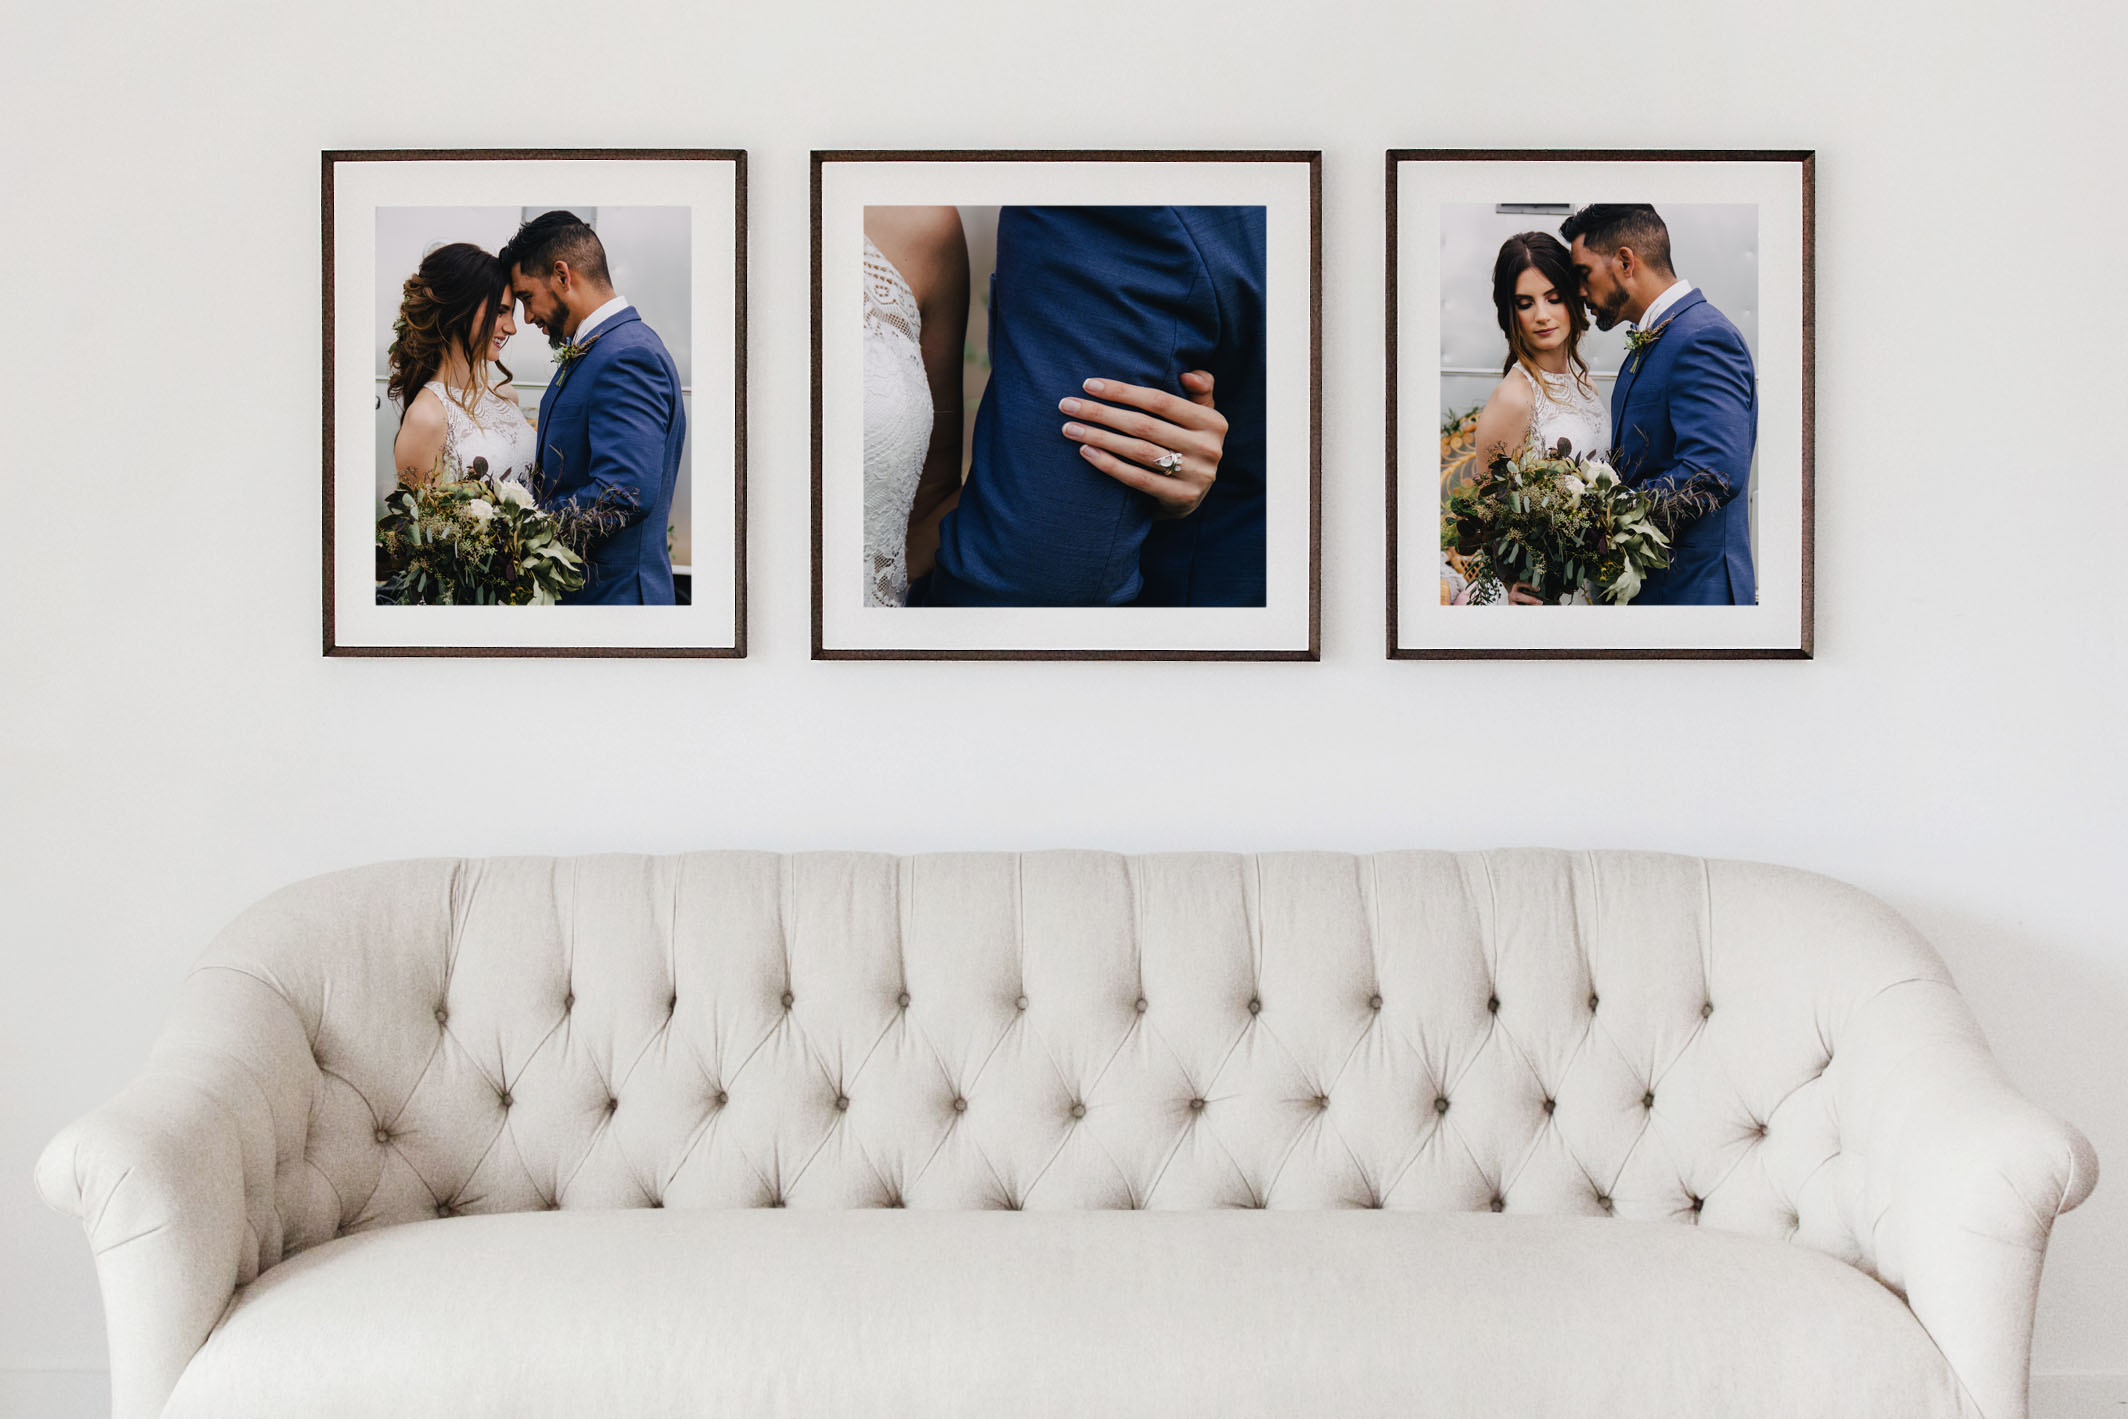 Simply classic and clean style. Includes one square frame and two vertical frames.   Collection 1   (2) 20x24 frames with 16x20 matted prints  (1) 24x24 framed with 20x20 matted print